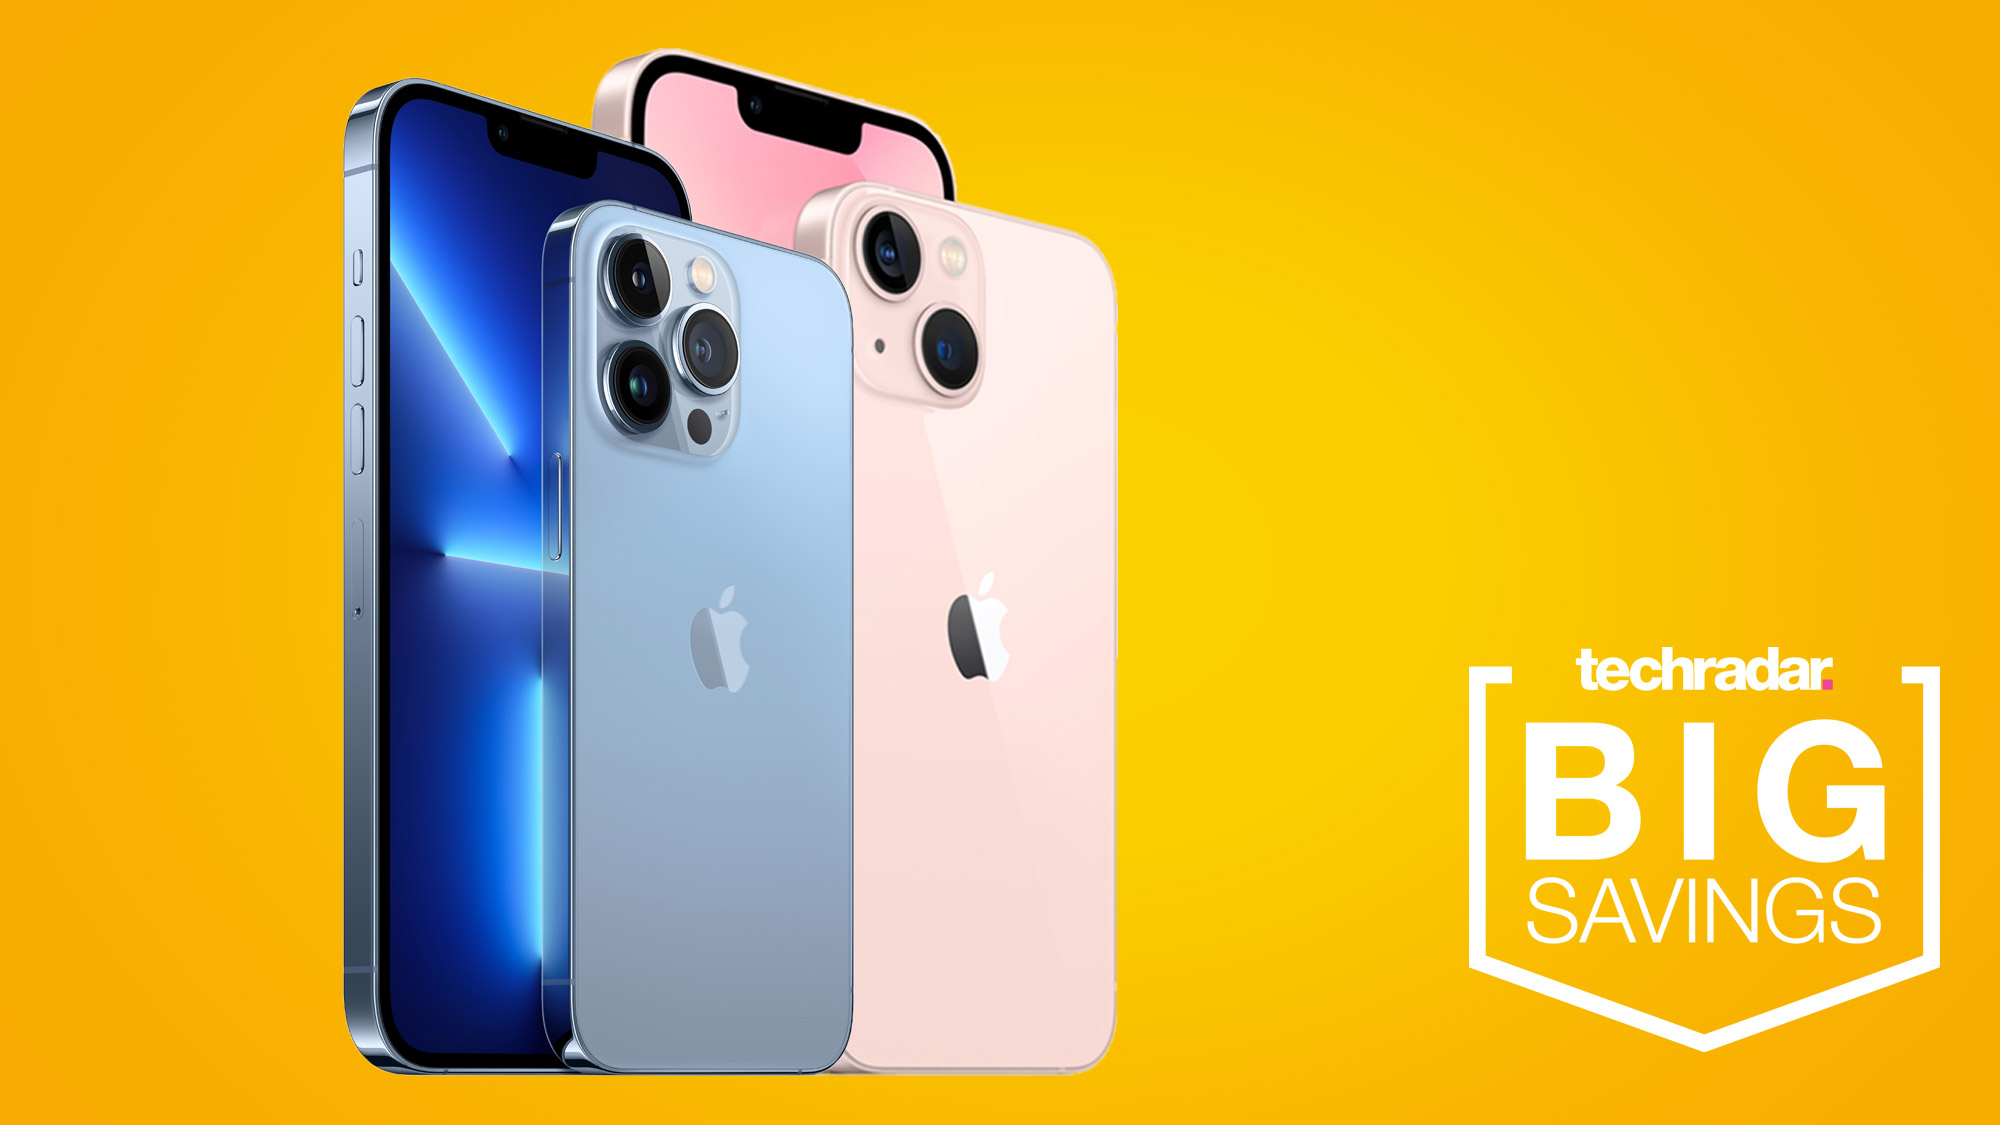 Save £20 on all iPhone 13 pre-orders instantly with this exclusive code